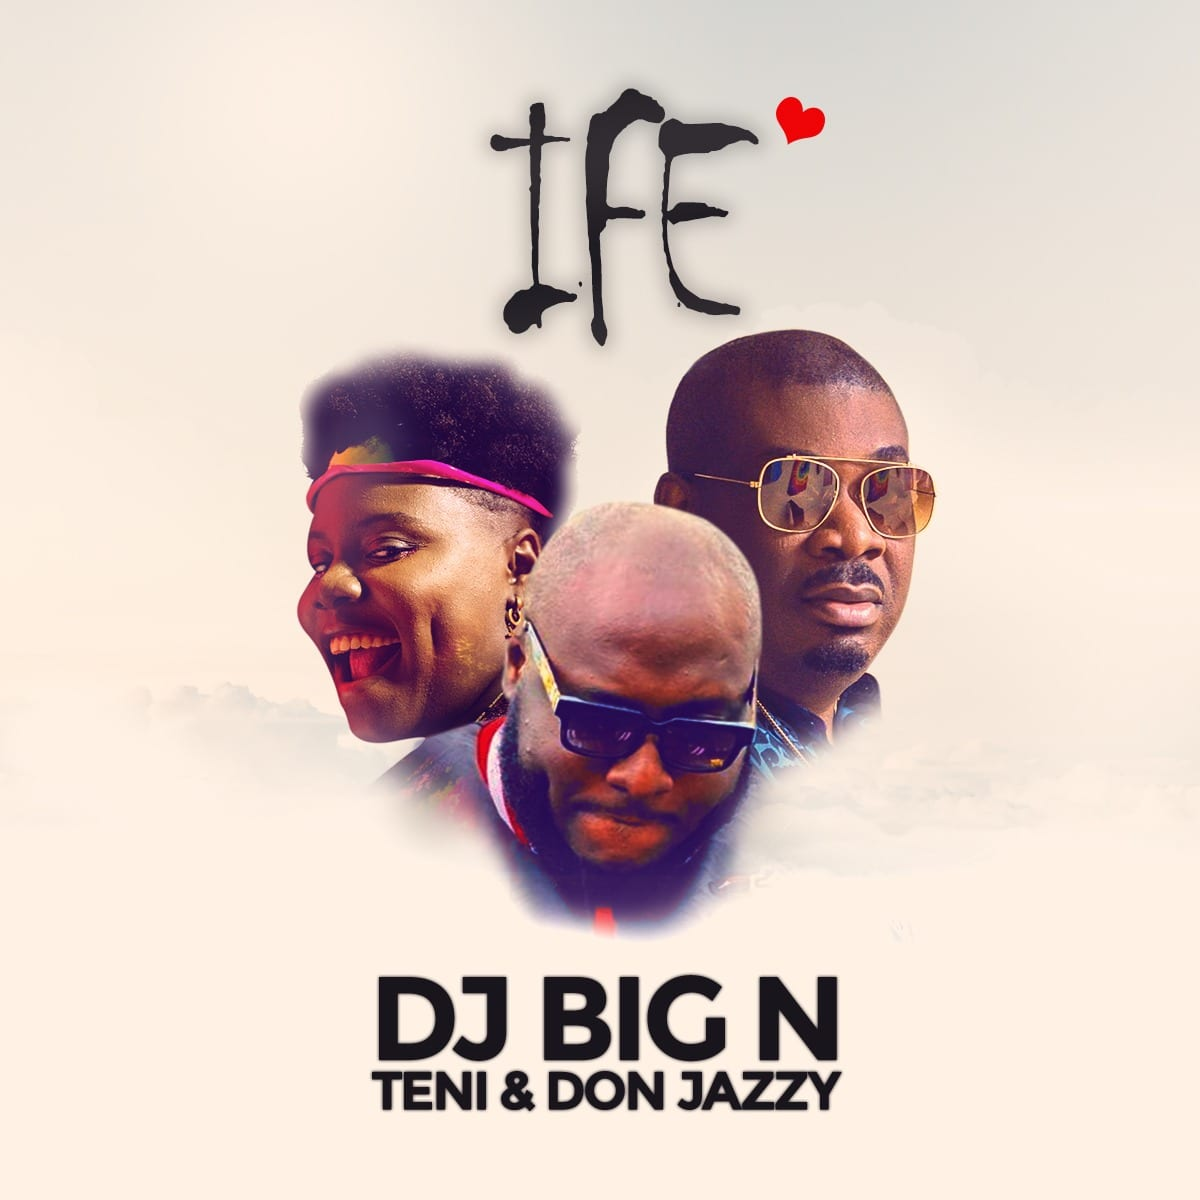 DJ Big N - Ife ft. Don Jazzy & Teni